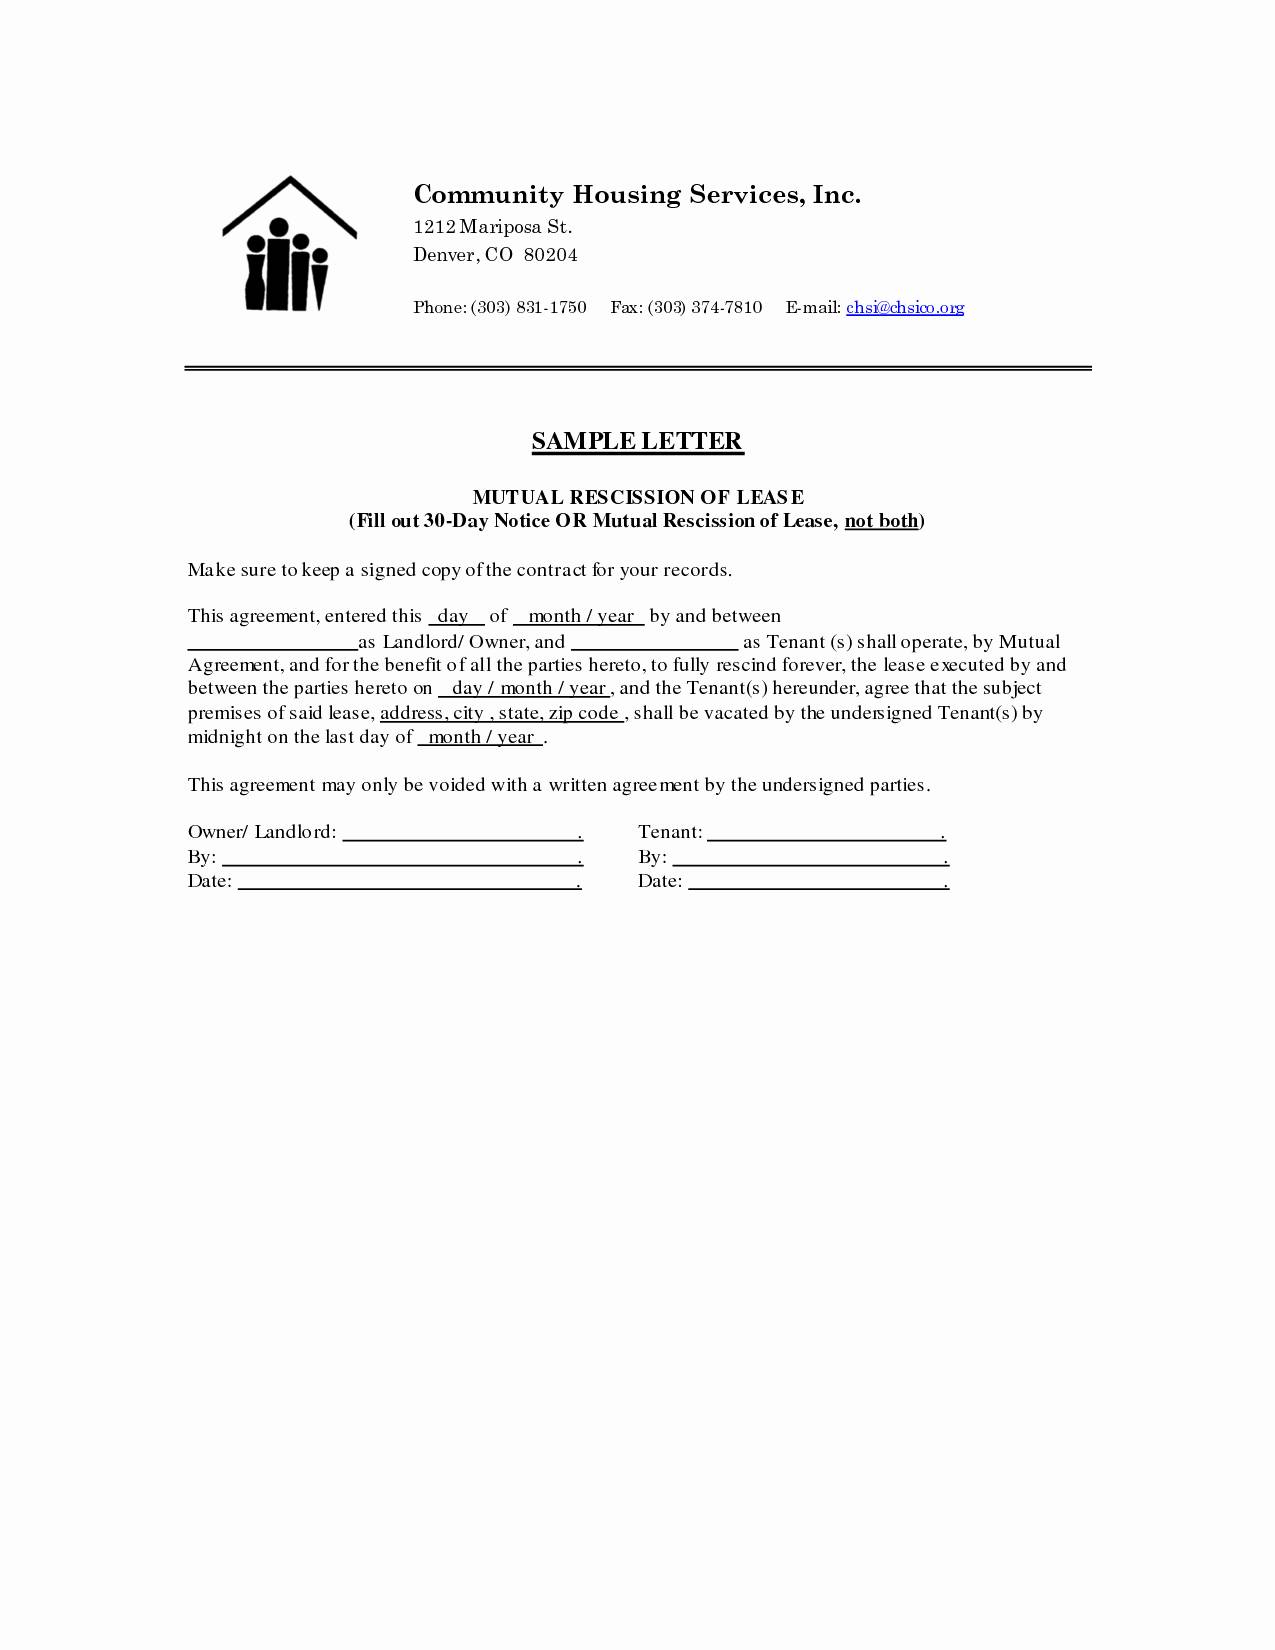 Giving Notice to Tenants Letter Template - Tenant Eviction Letter Template Awesome 19 Best Demotion Letter